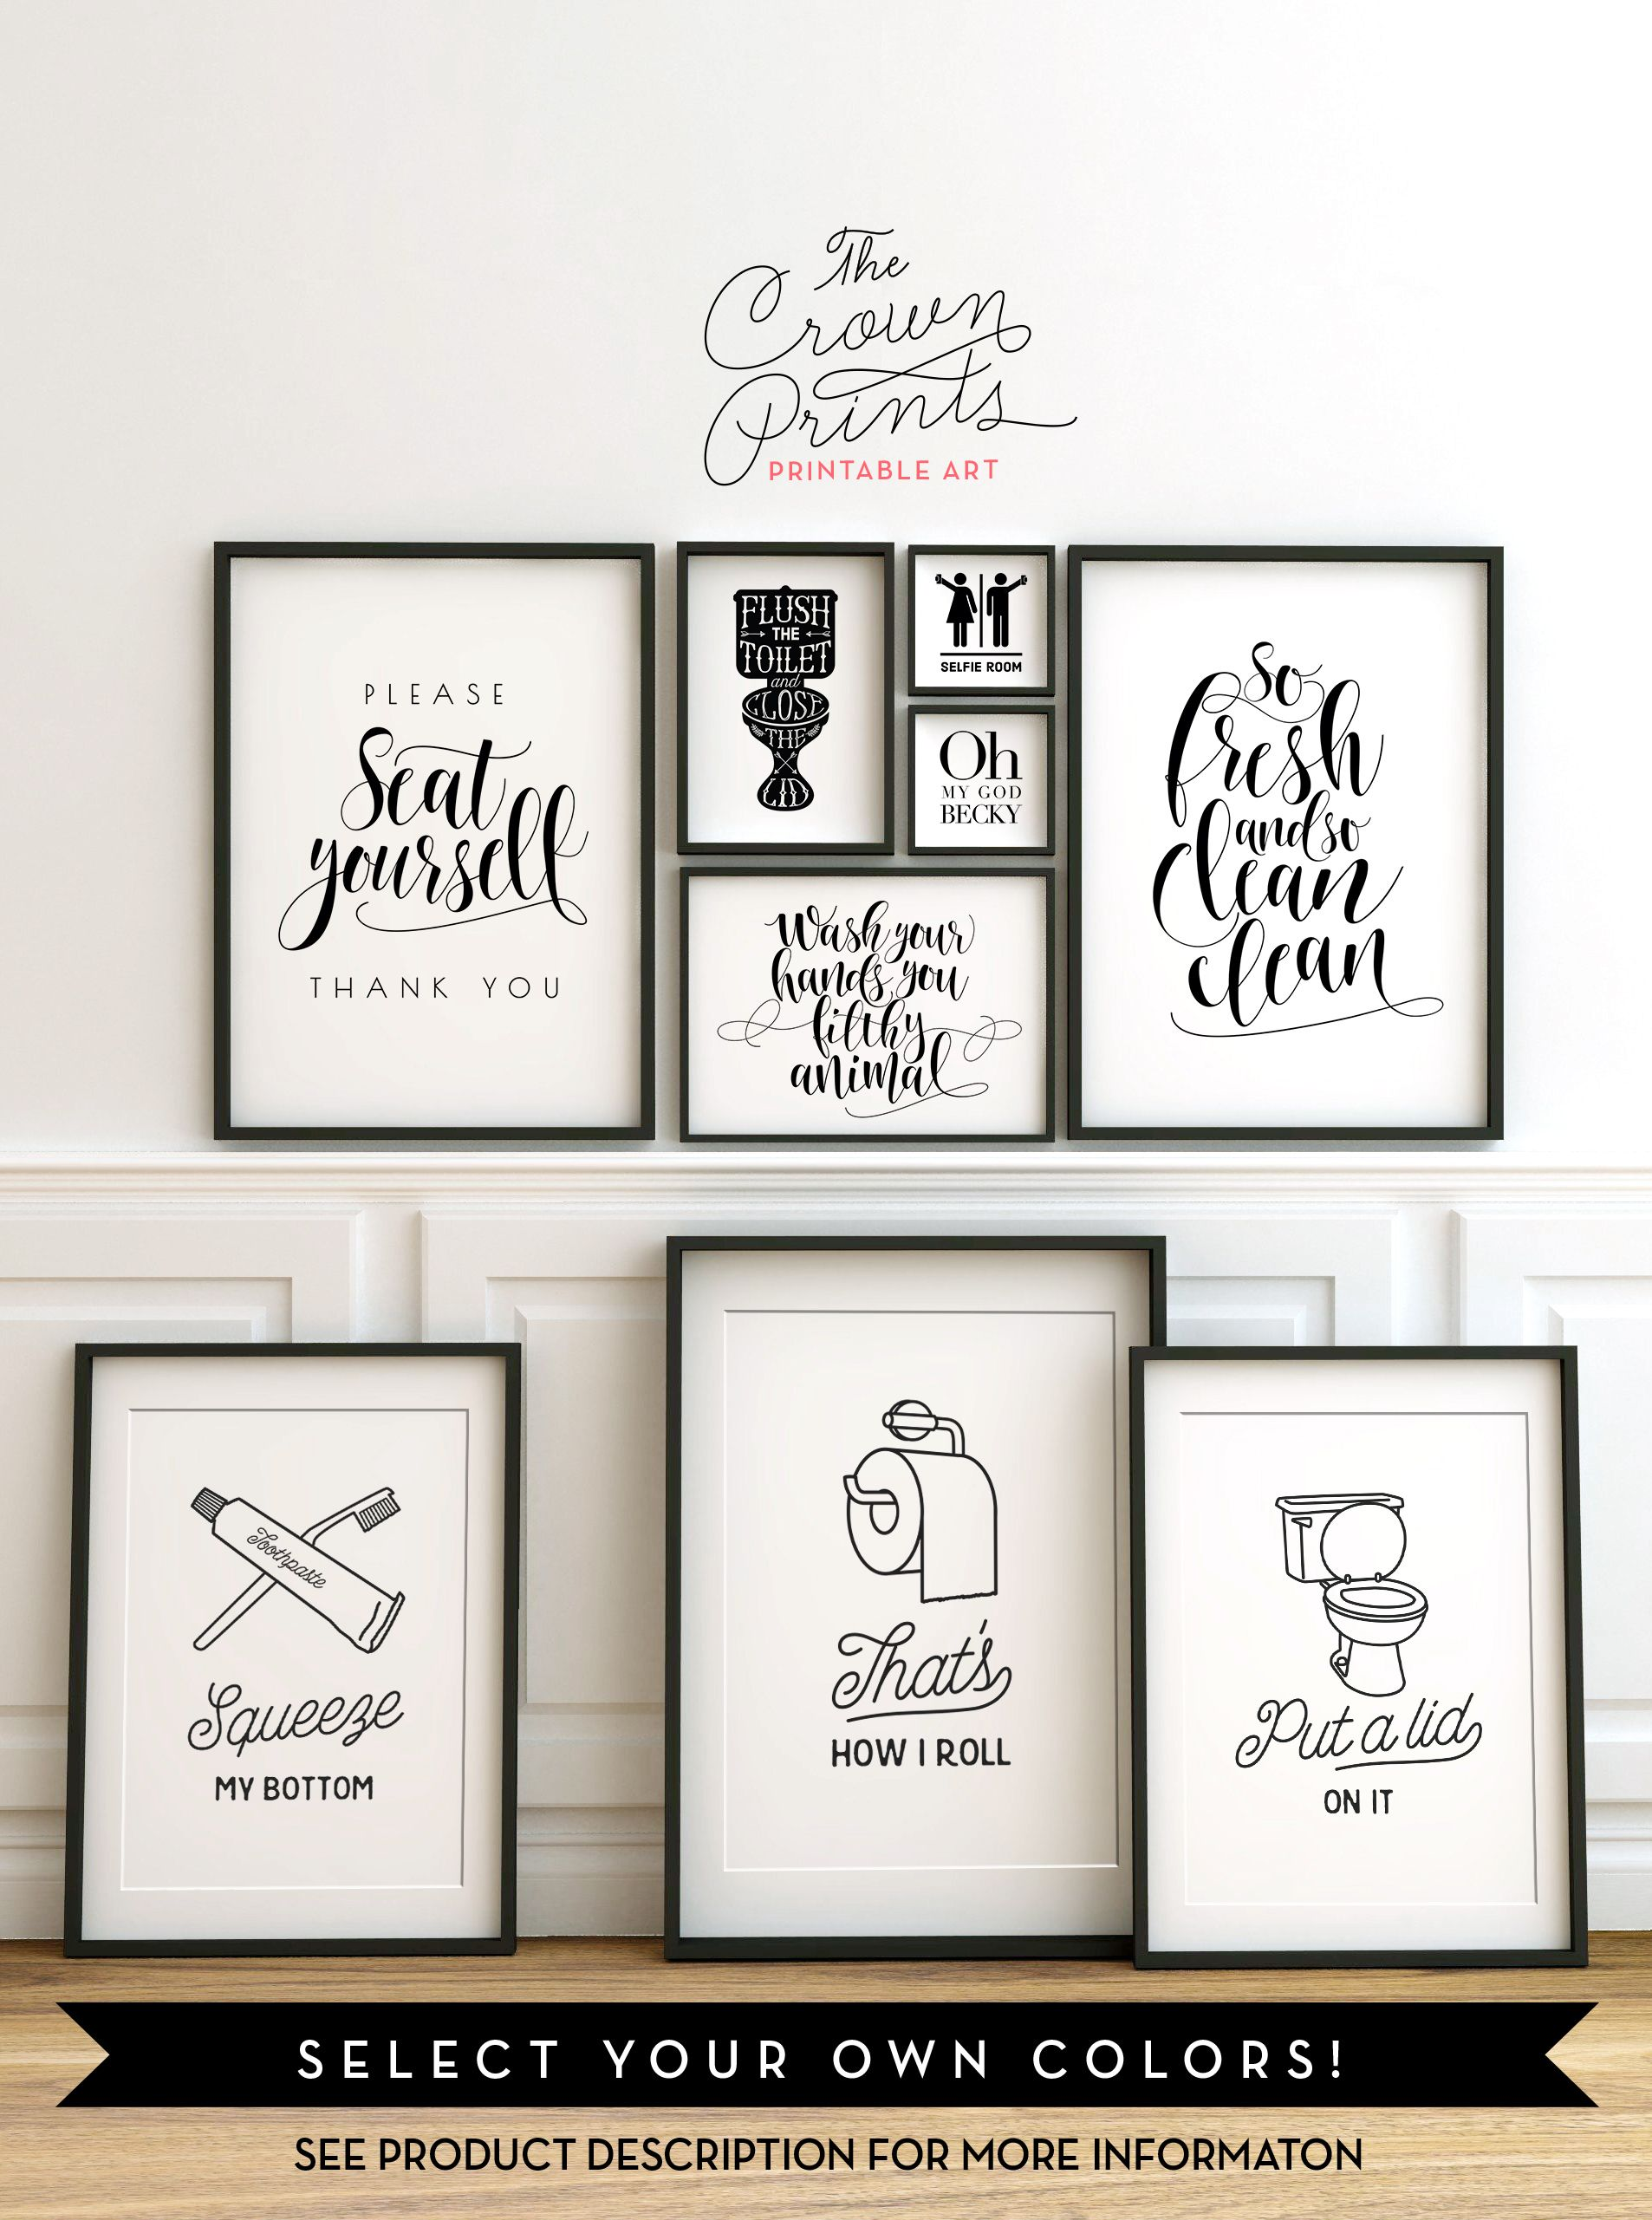 Printable bathroom wall art from the crown prints on etsy for Best quotes for wall art